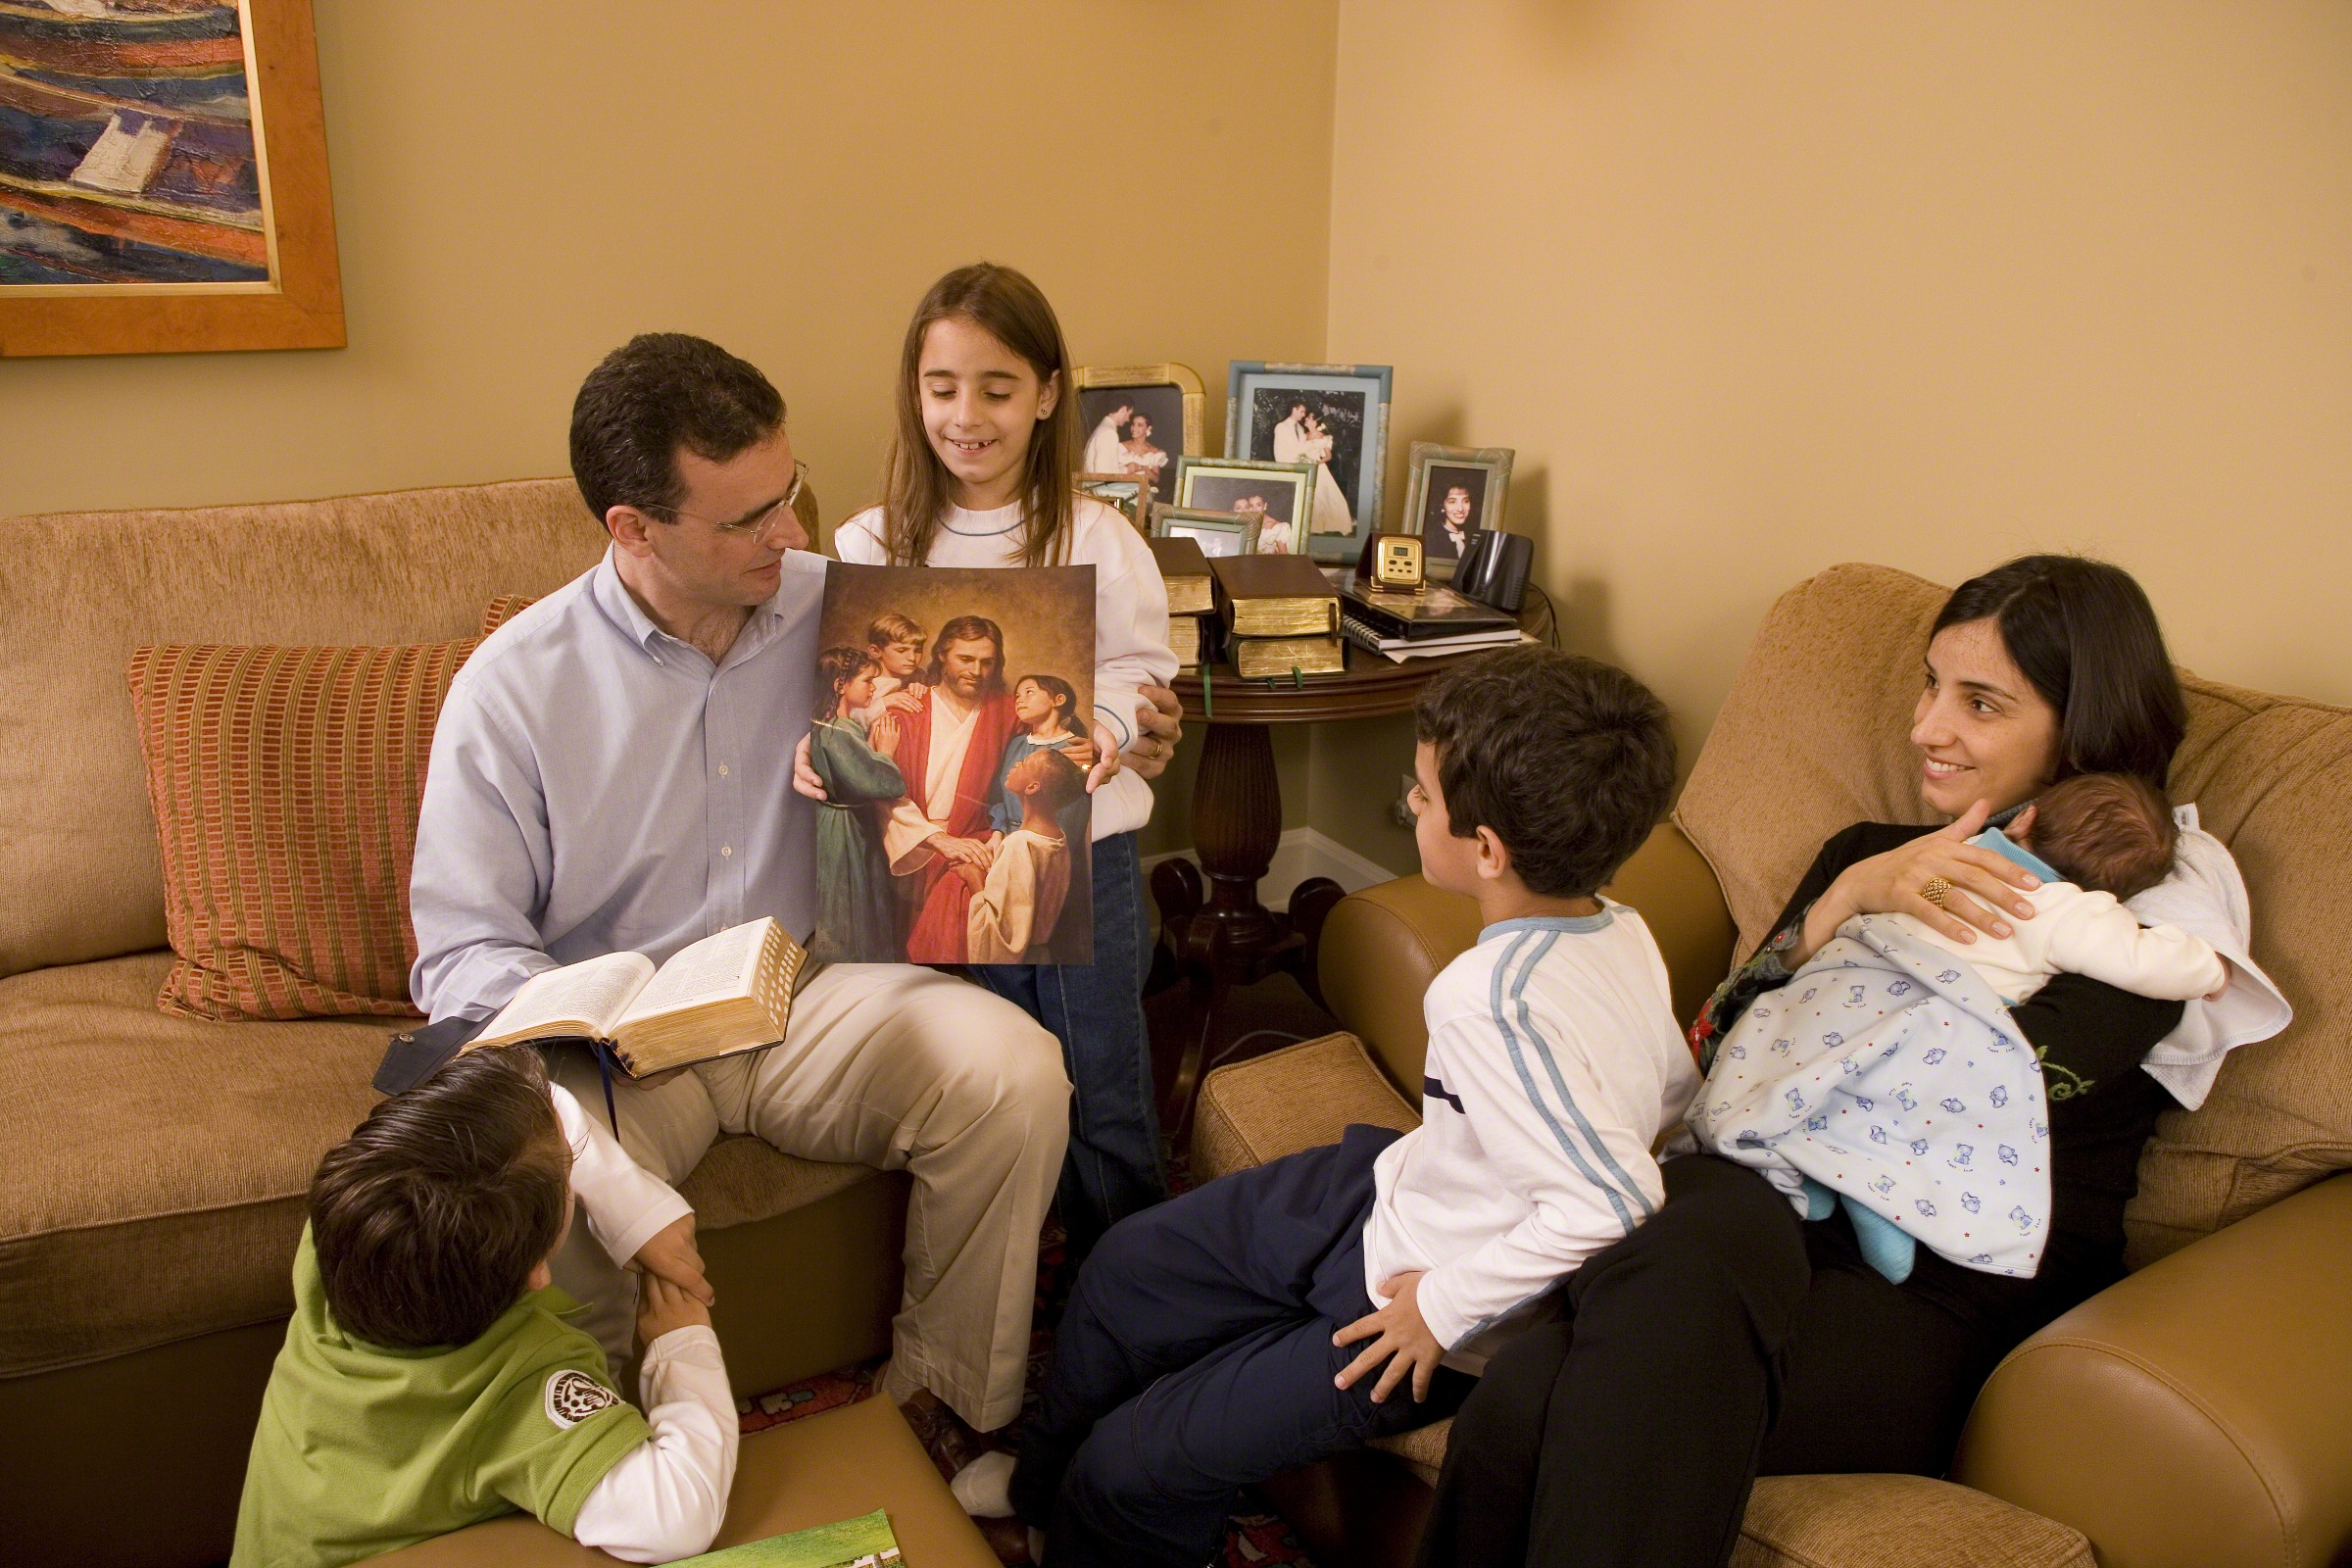 Lds family home evening ideas for adults